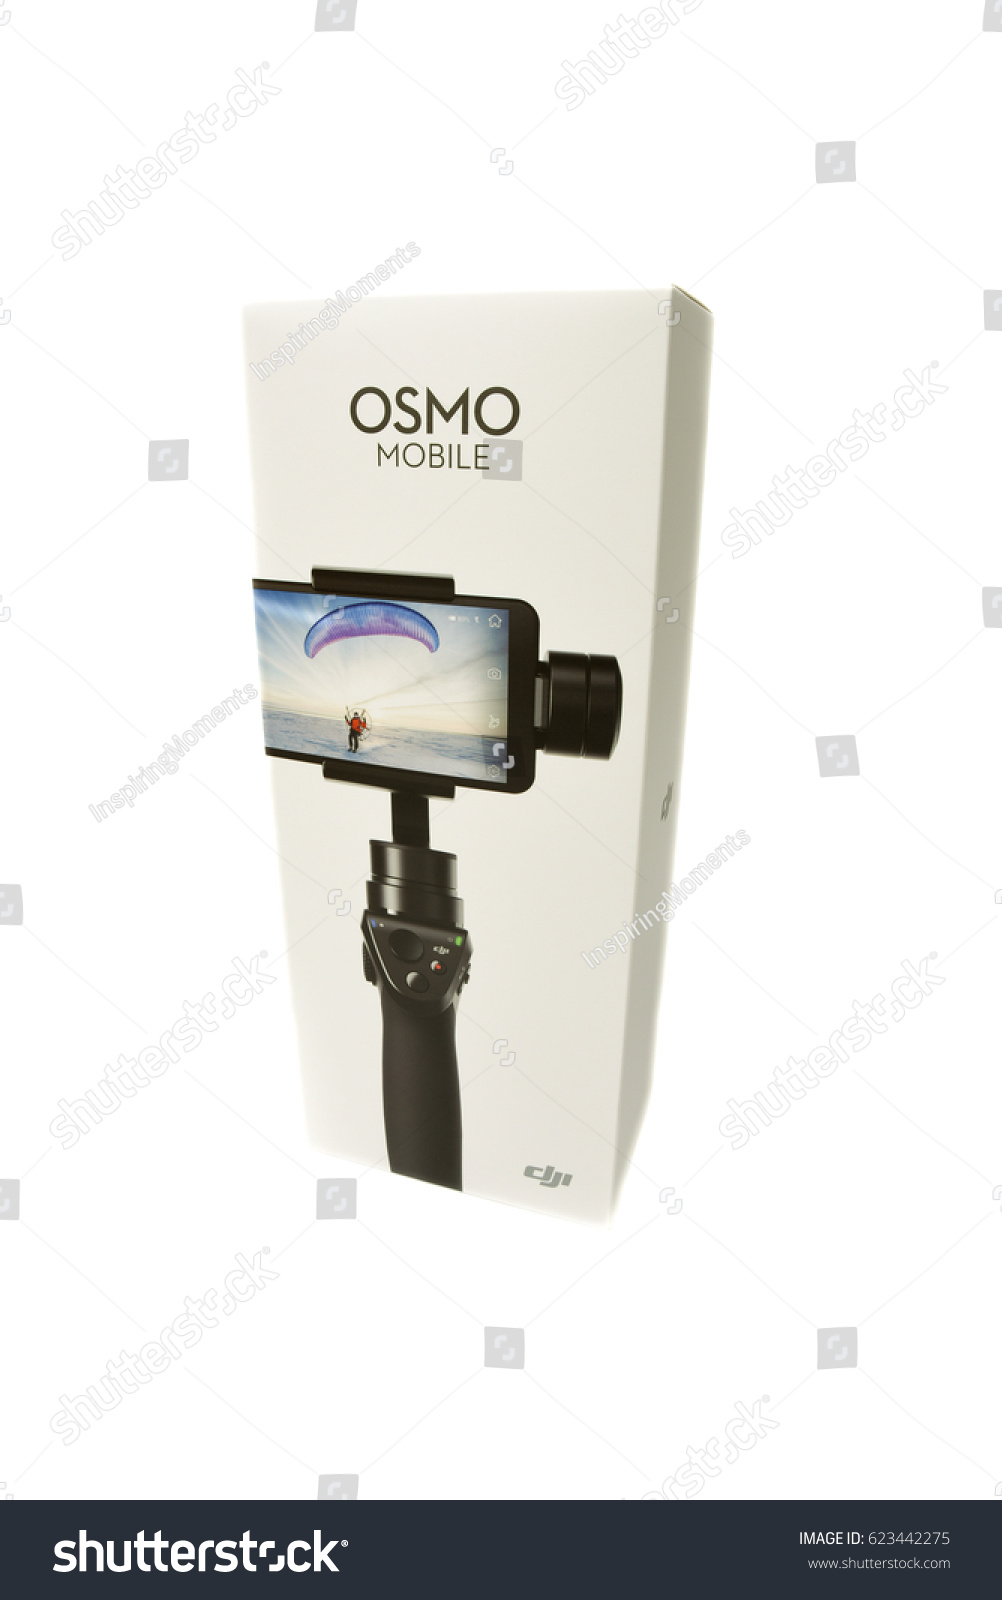 Dji Osmo Mobile Silver New Gimbal Stand Stock Photo Edit Now 623442275 For Smartphone In The Box Latvia January 20